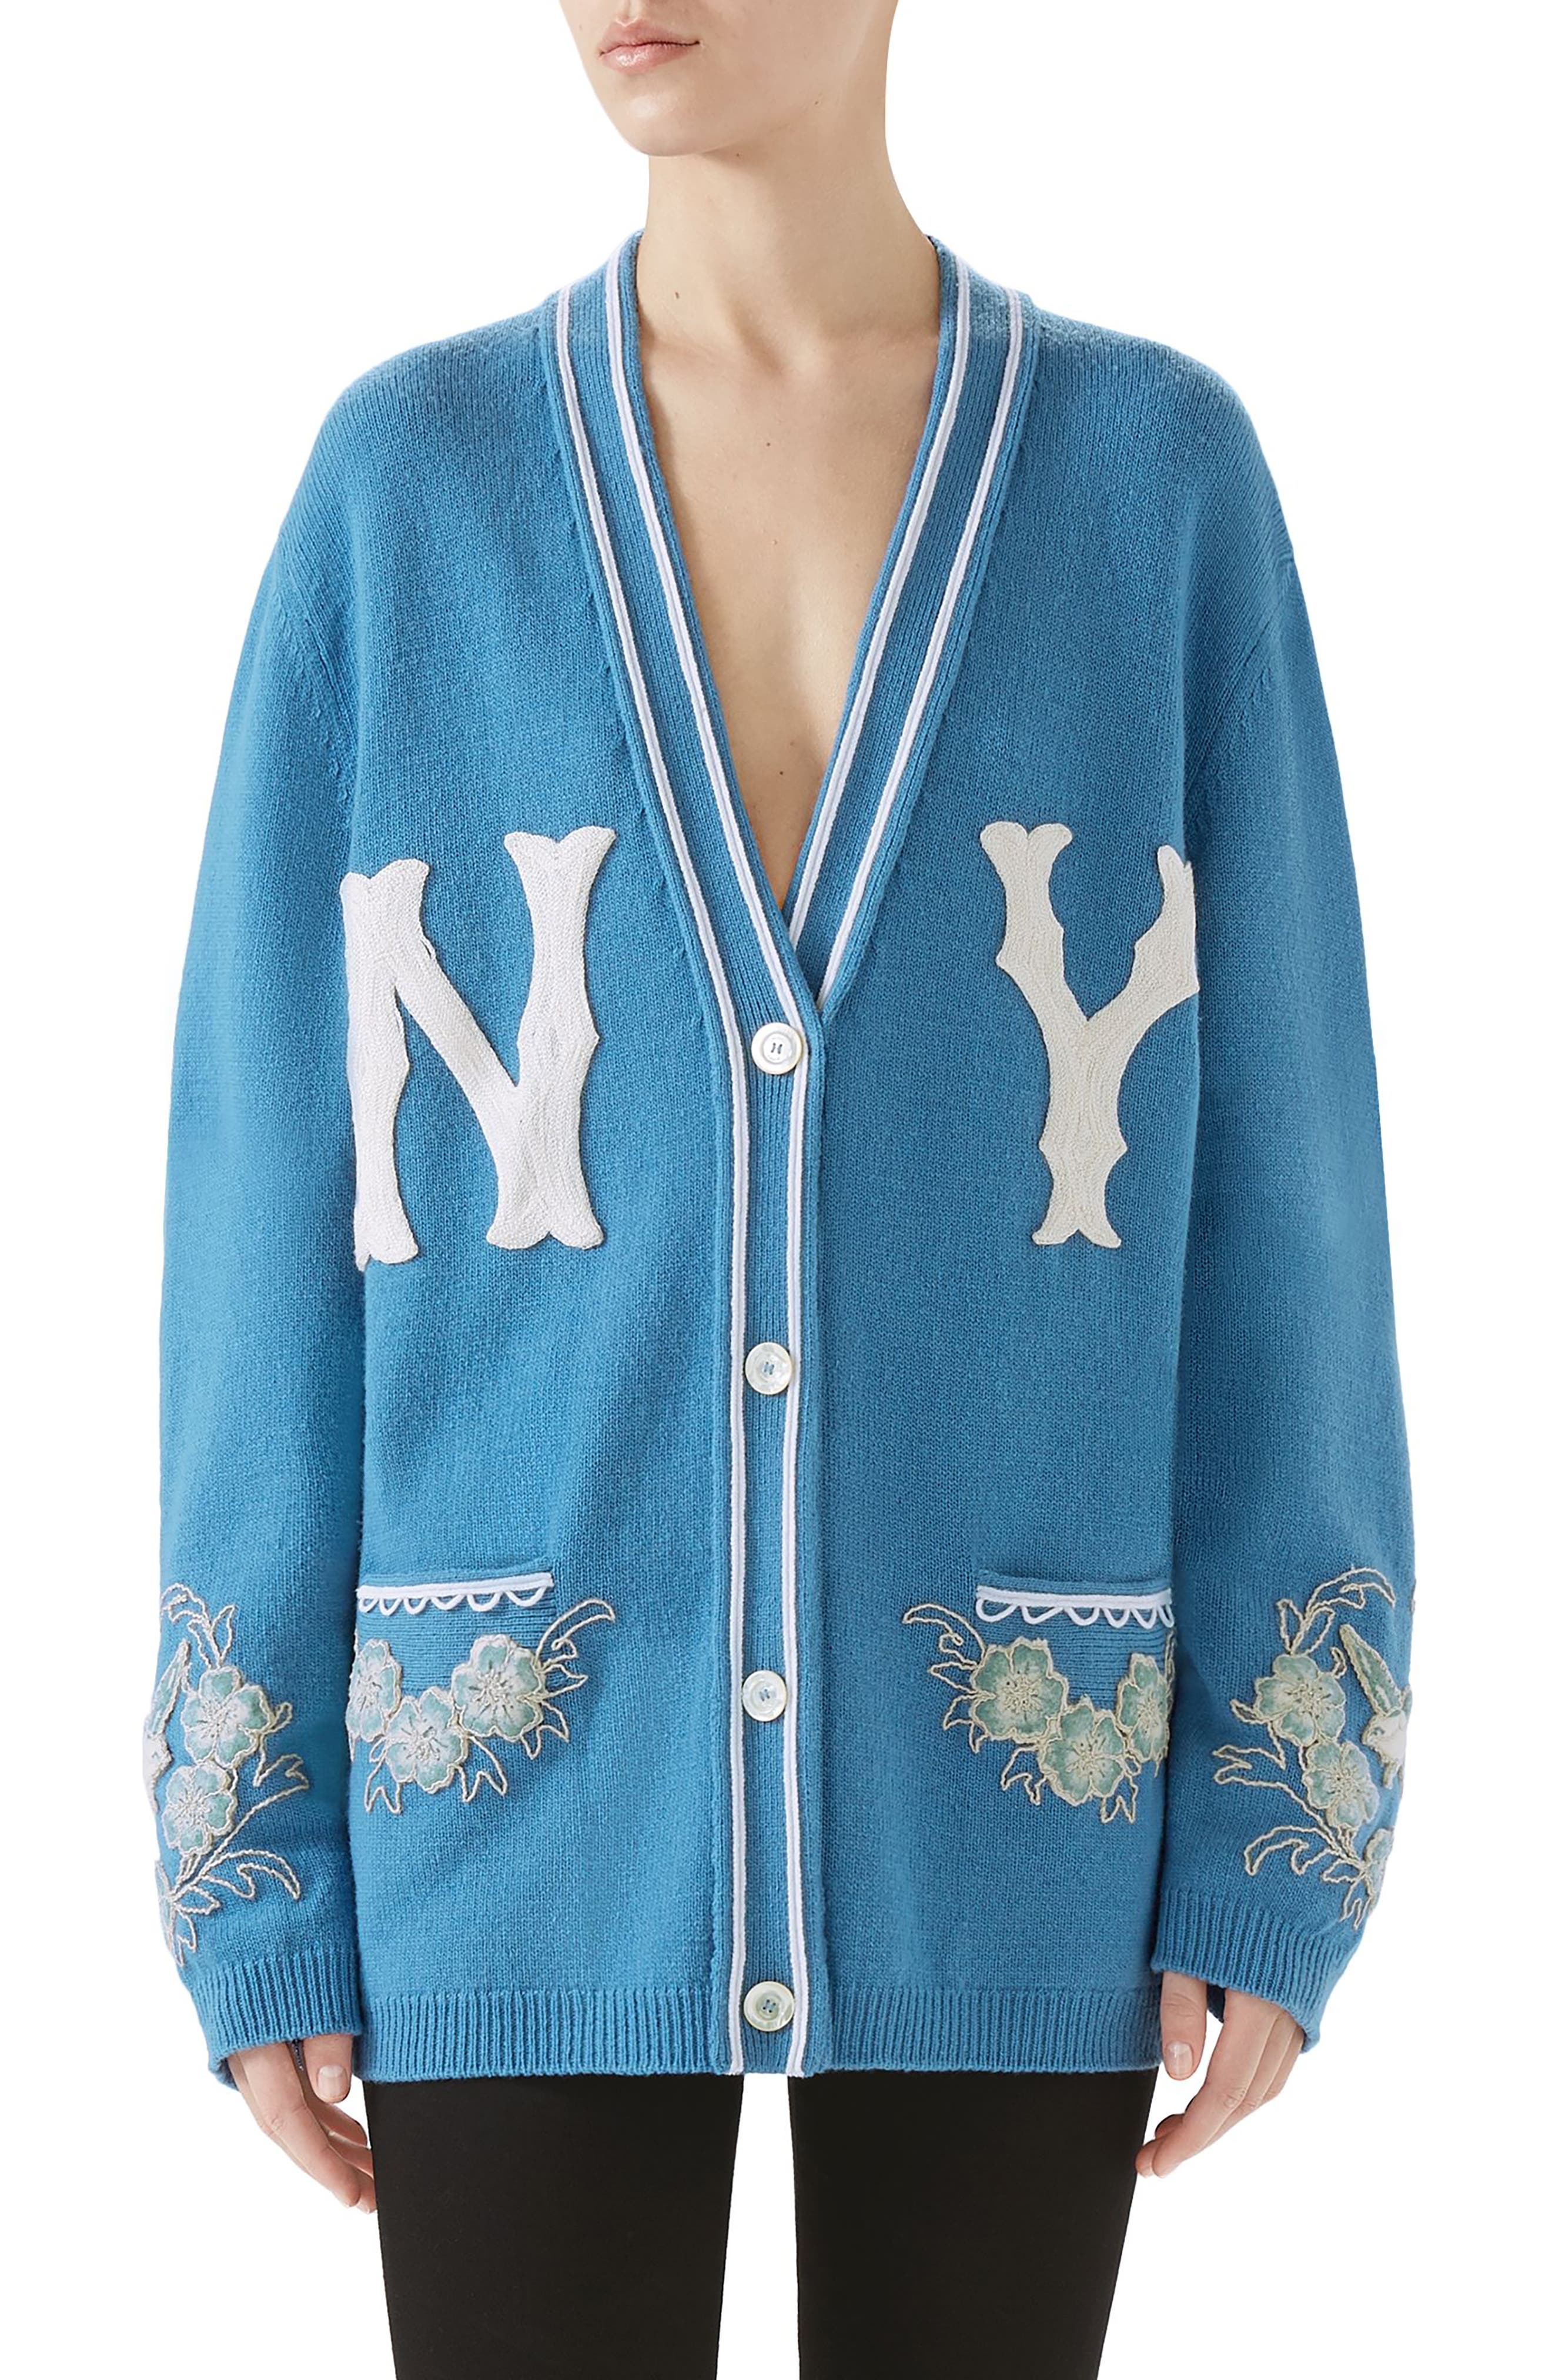 NY Embroidered Wool Cardigan,                             Main thumbnail 1, color,                             BLUE